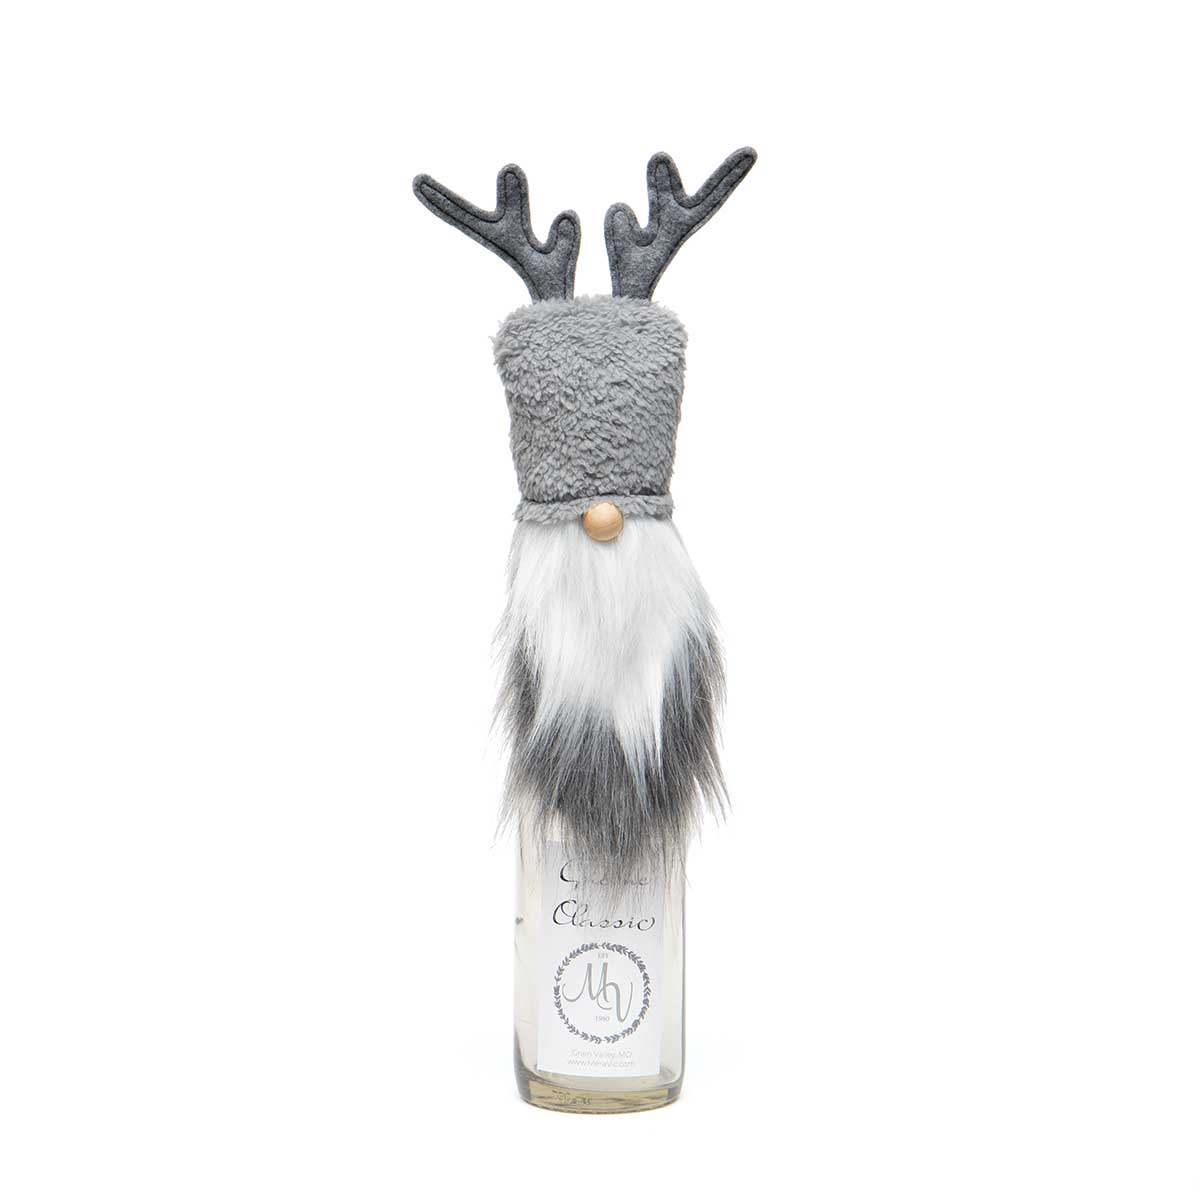 RUDI REINDEER GNOME BOTTLE TOPPER GREY WITH WIRED ANTLERS